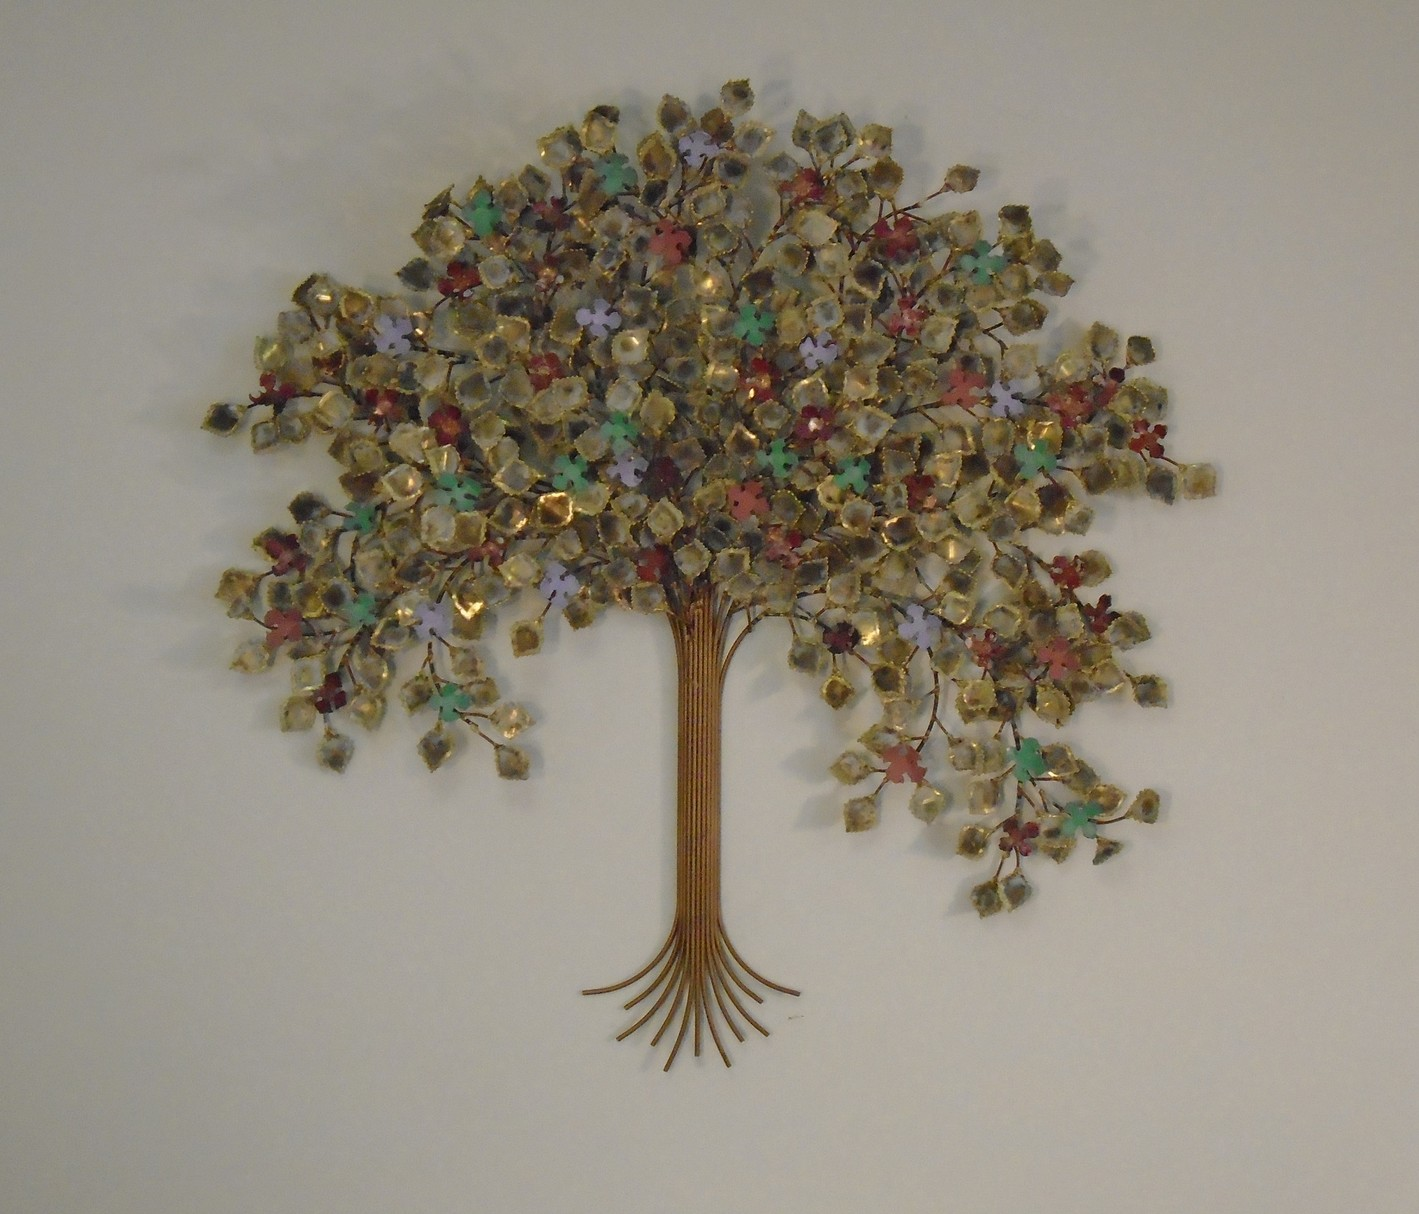 Tree of life wall art metal sculpture metal decor - Sculpture wall decor ...